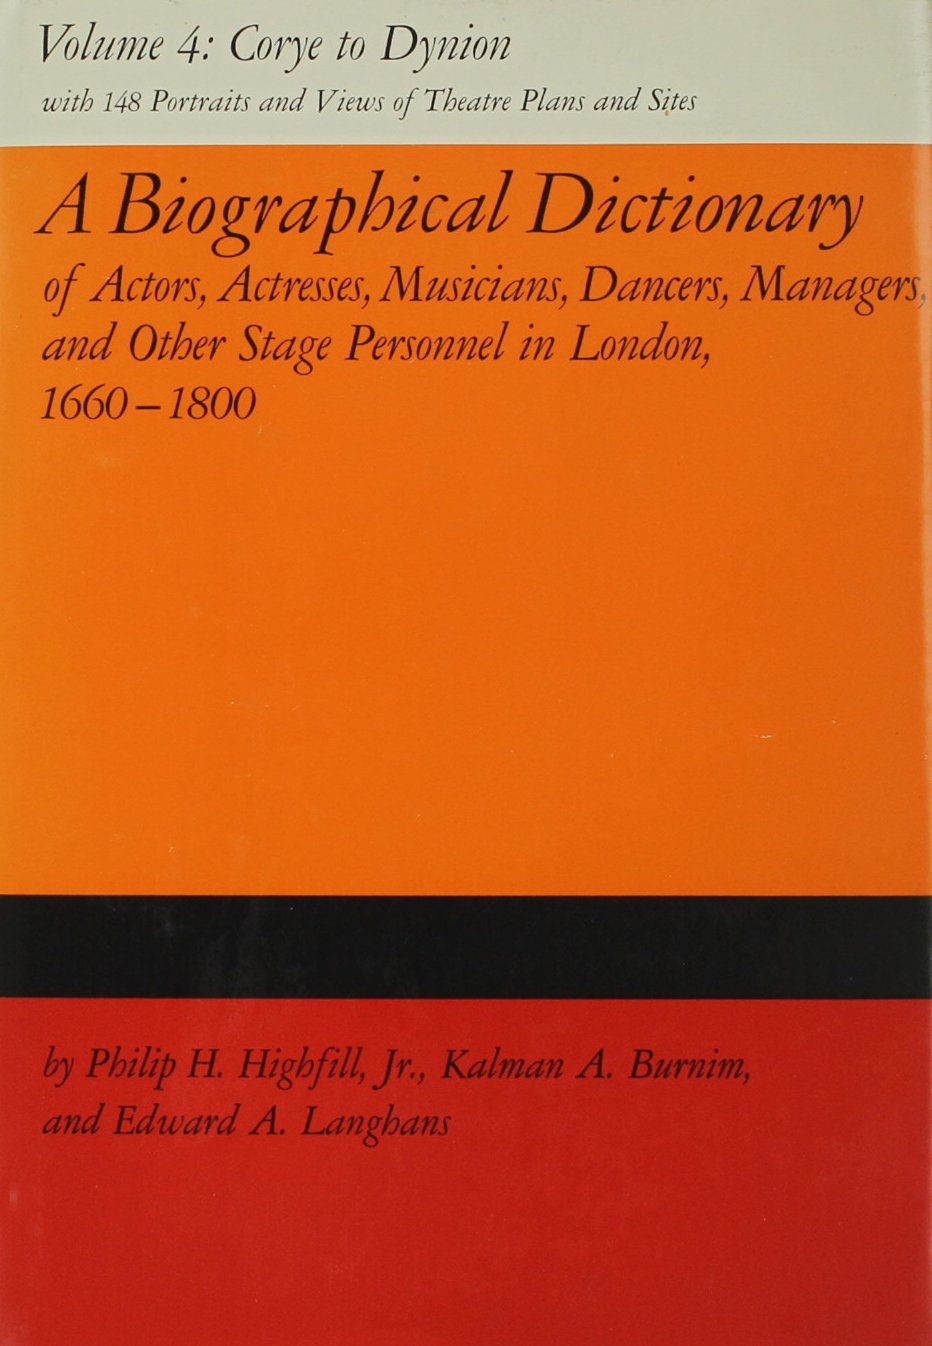 A Biographical Dictionary of Actors, Volume 4, Corye to Dynion: Actresses, Musicians, Dancers, Managers, and Other Stage Personnel in London, ... Dictionary of Actors & Actresses, 1660-1800)